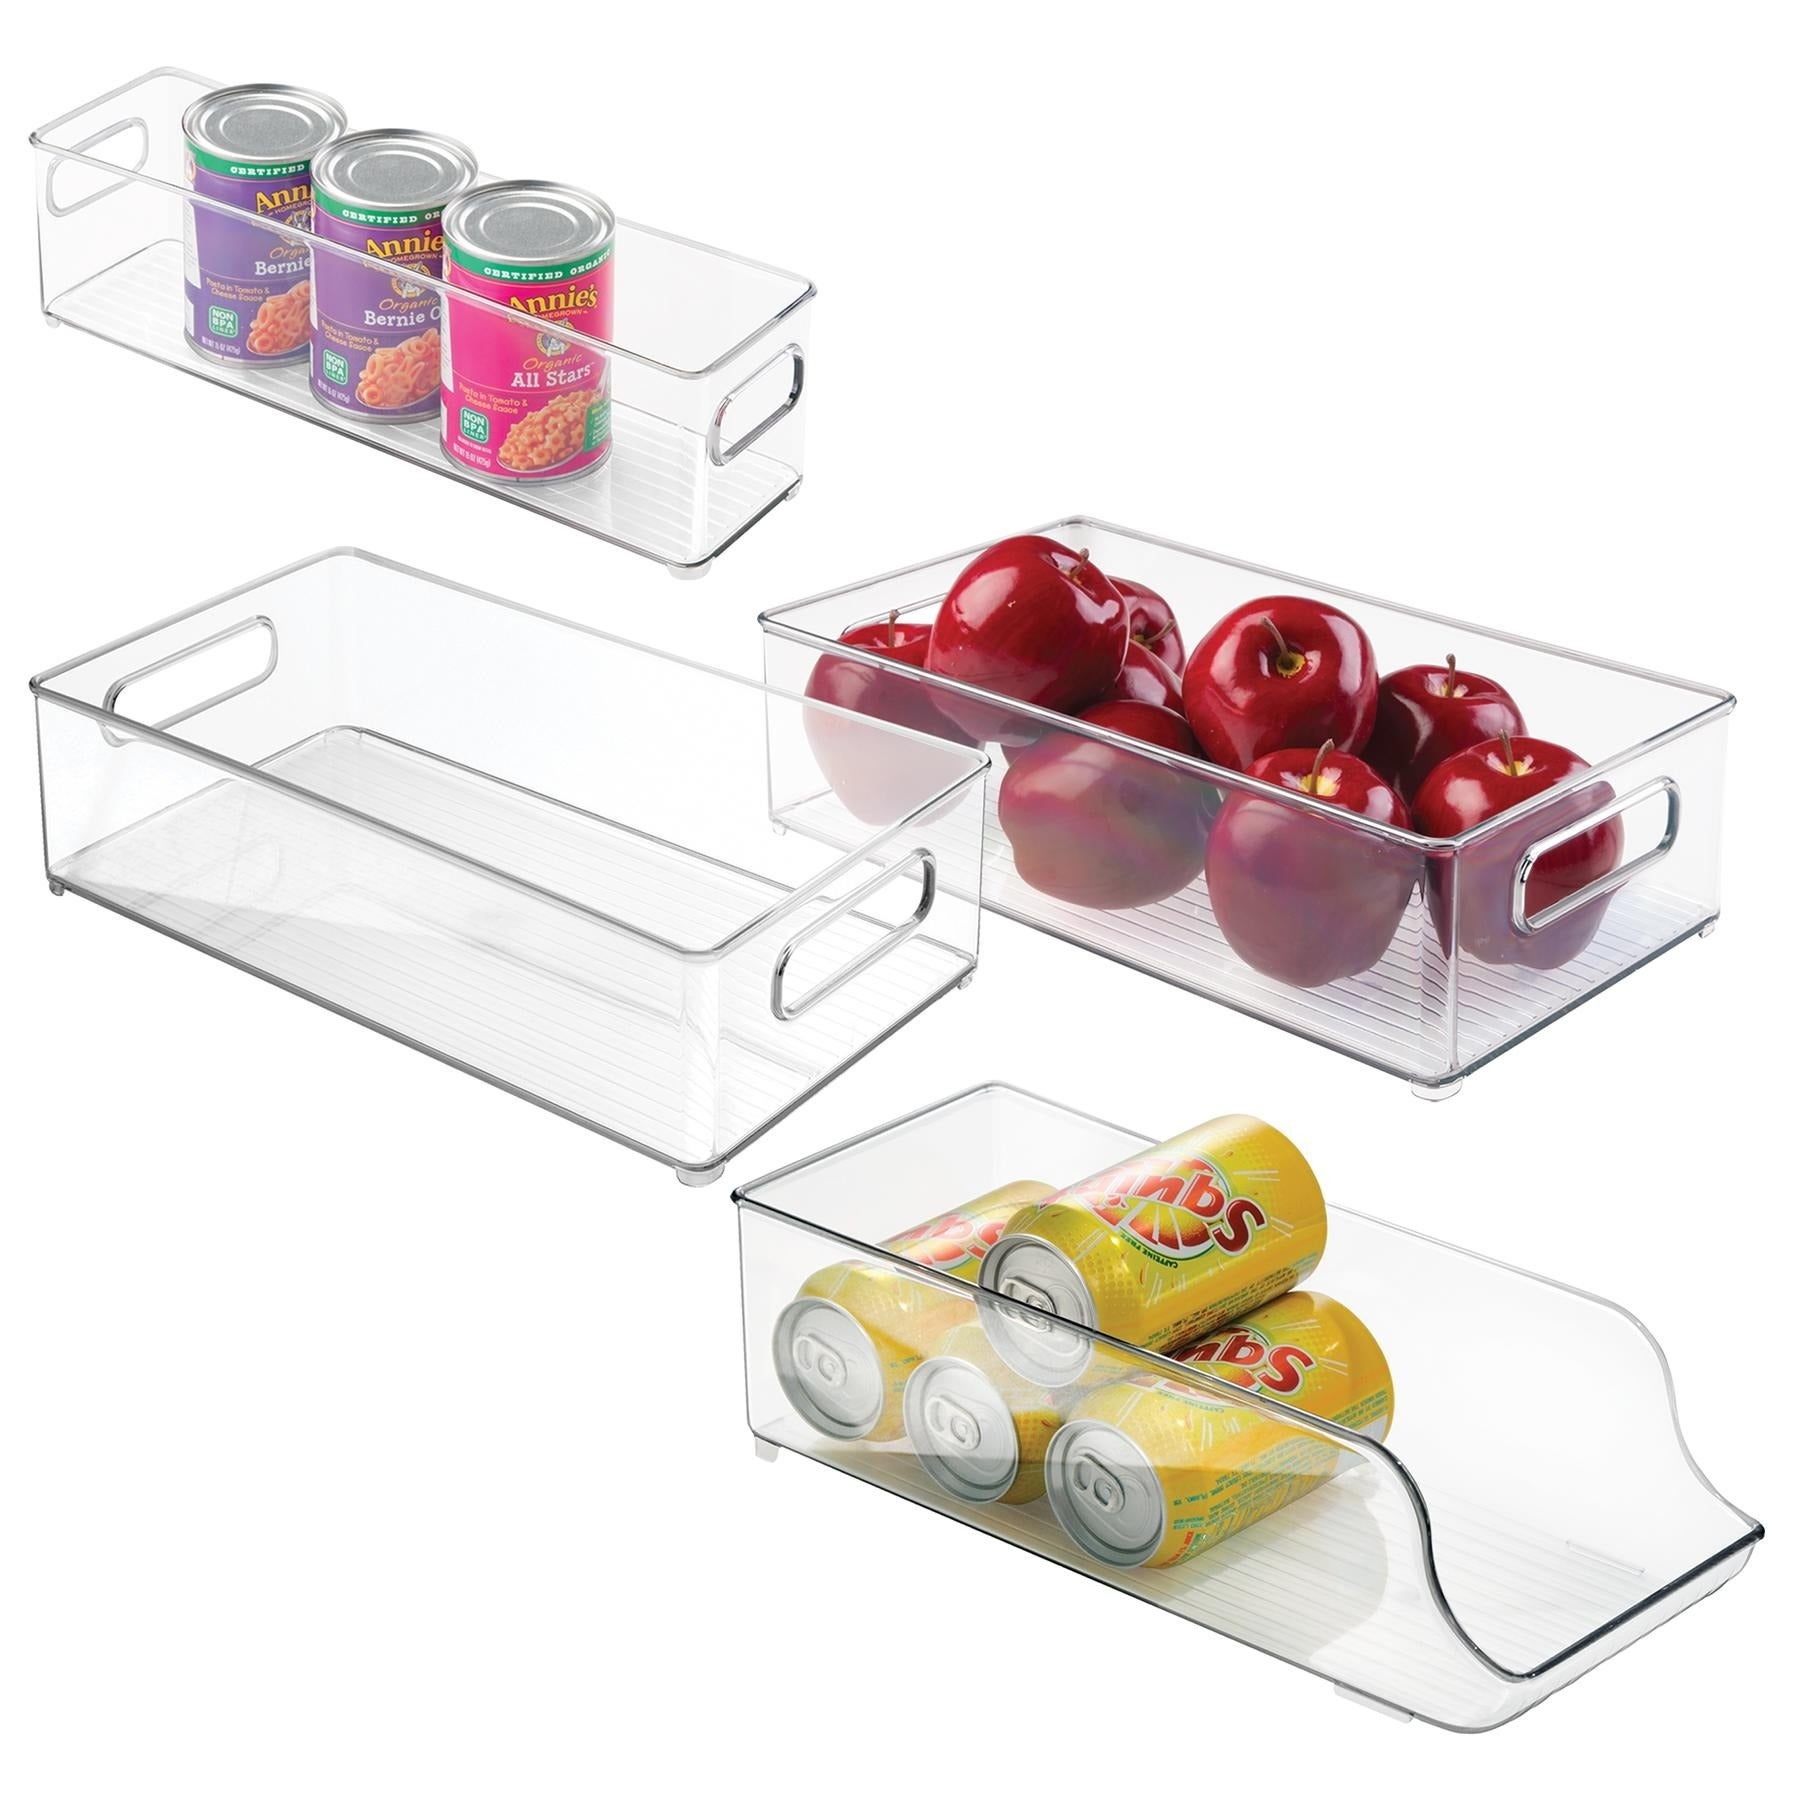 Charming Shop Interdesign 4 Piece Fridge And Freezer Storage Bins   Free Shipping On  Orders Over $45   Overstock.com   8847219